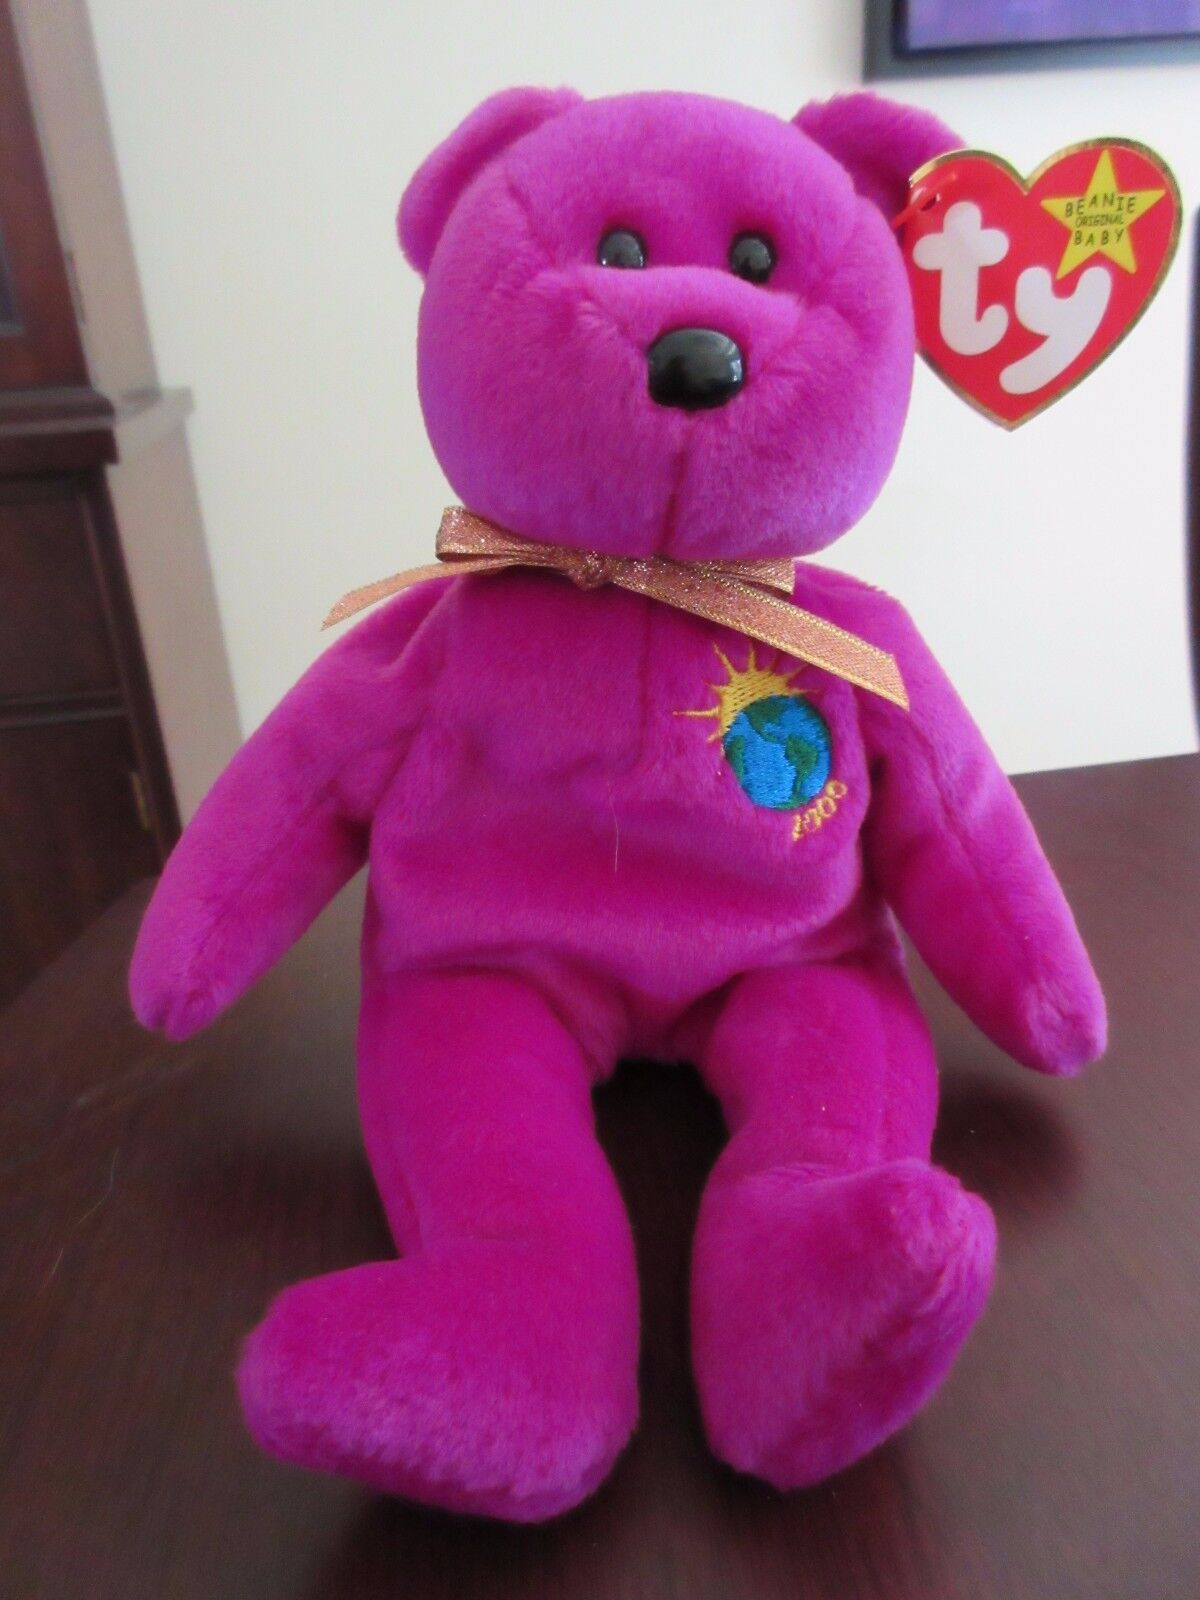 Millenium TY Beanie Baby rare with errors misspelled mint condition